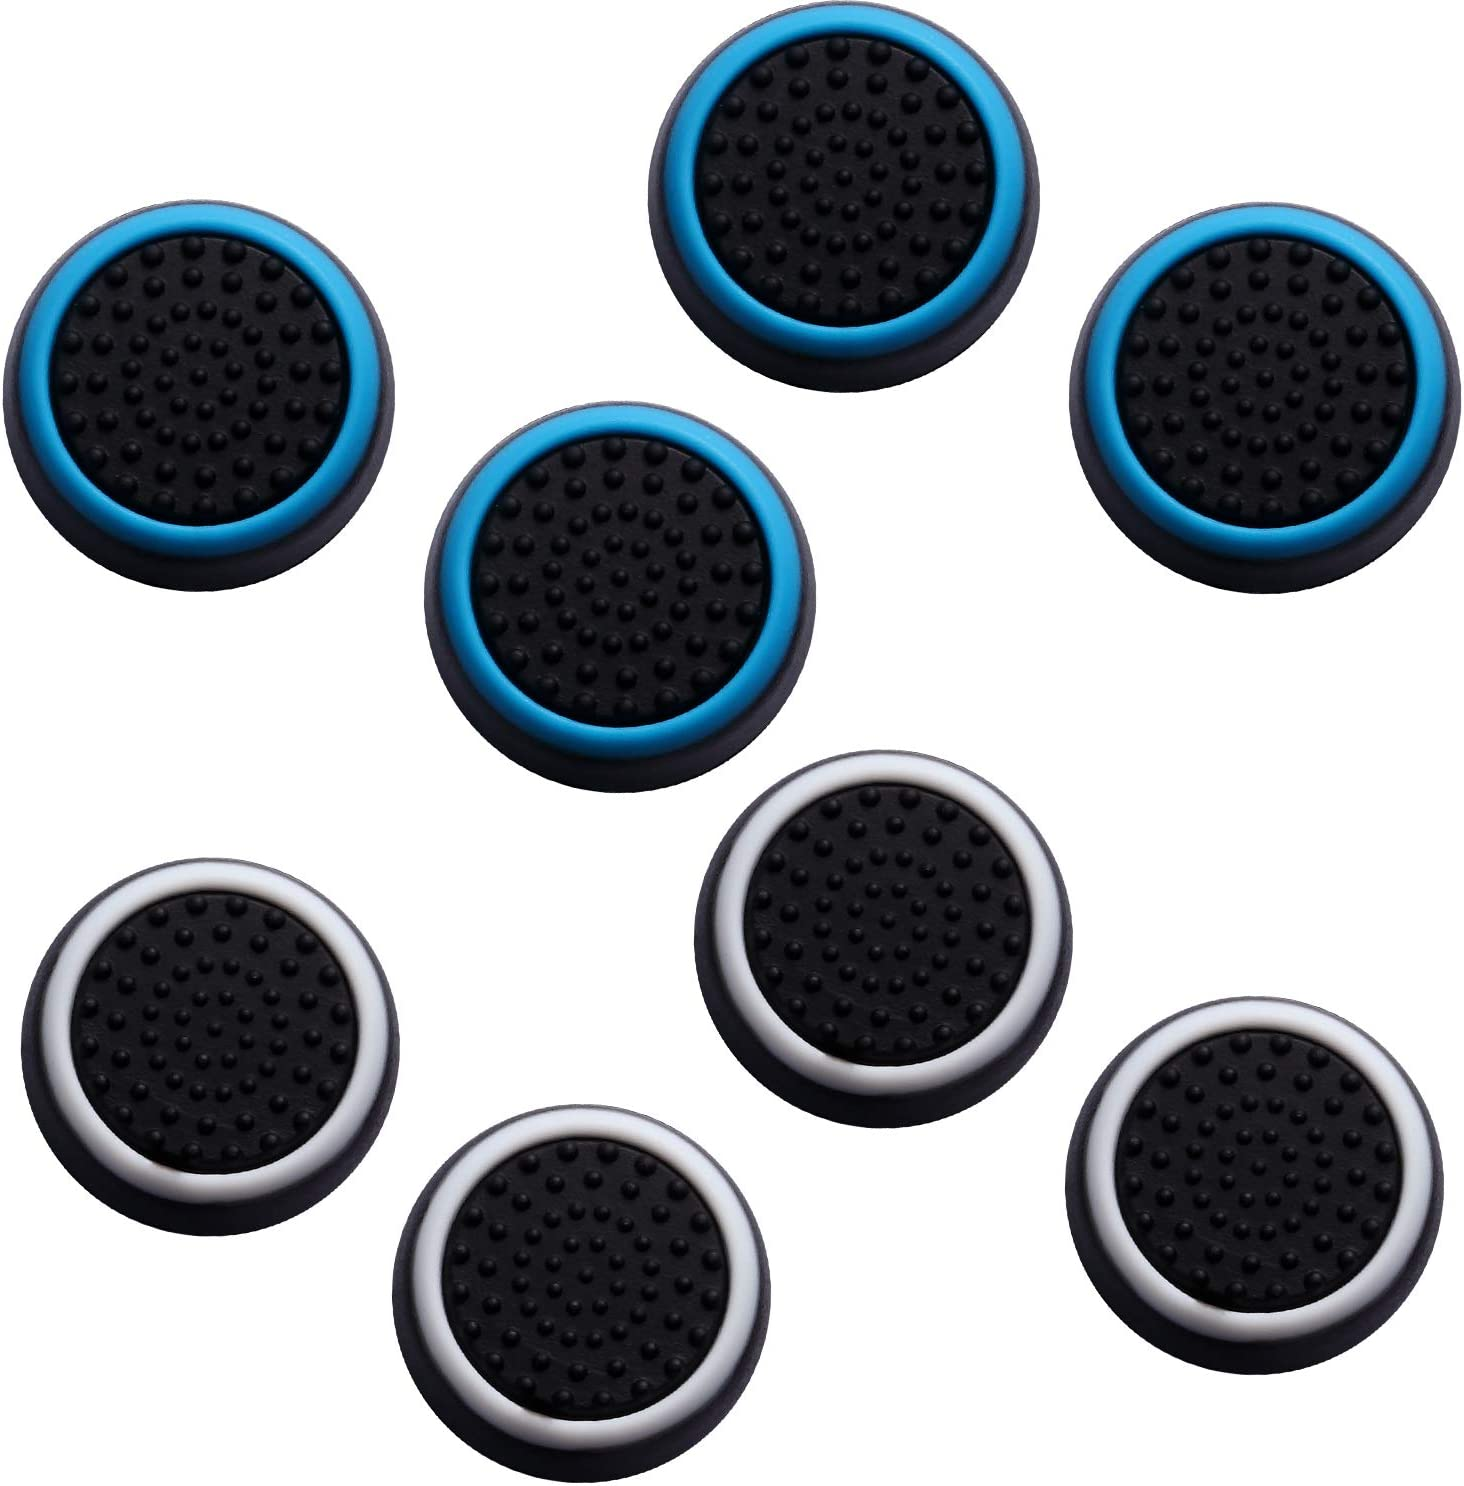 Pack of 8 Silicone Cap Joystick Protective Covers Compatible with PS4 PS3 PS2 DualShock WiiU Xbox One 360 Wireless Controller Fpxnb 4 Pairs 8 Pcs Analog Stick Thumb Grip Set